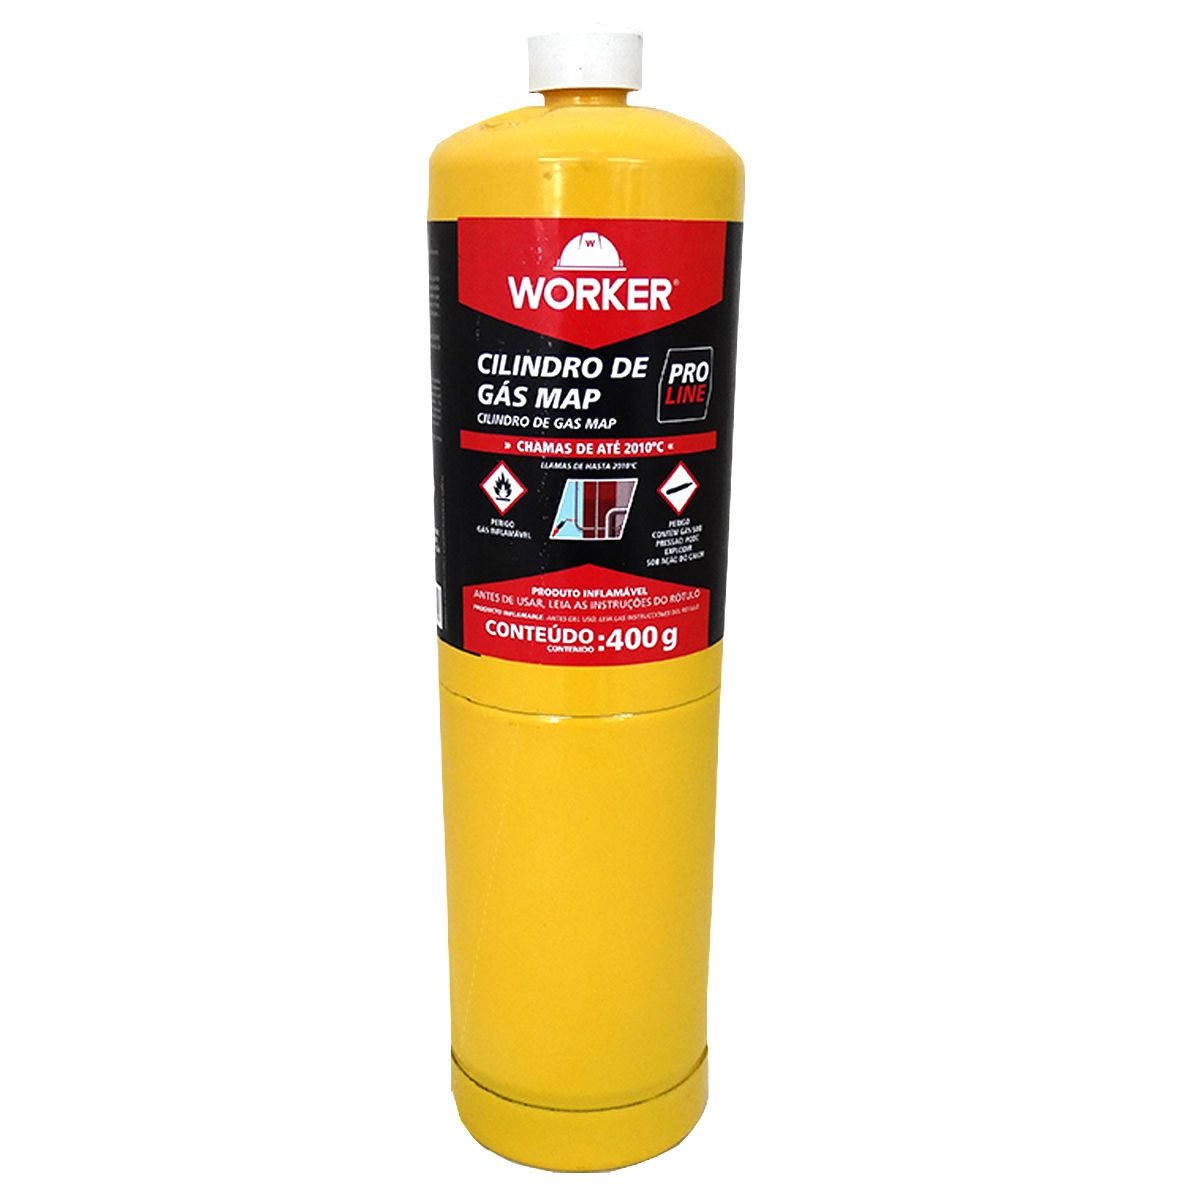 Cilindro de Gás Map Pro 400g – Worker